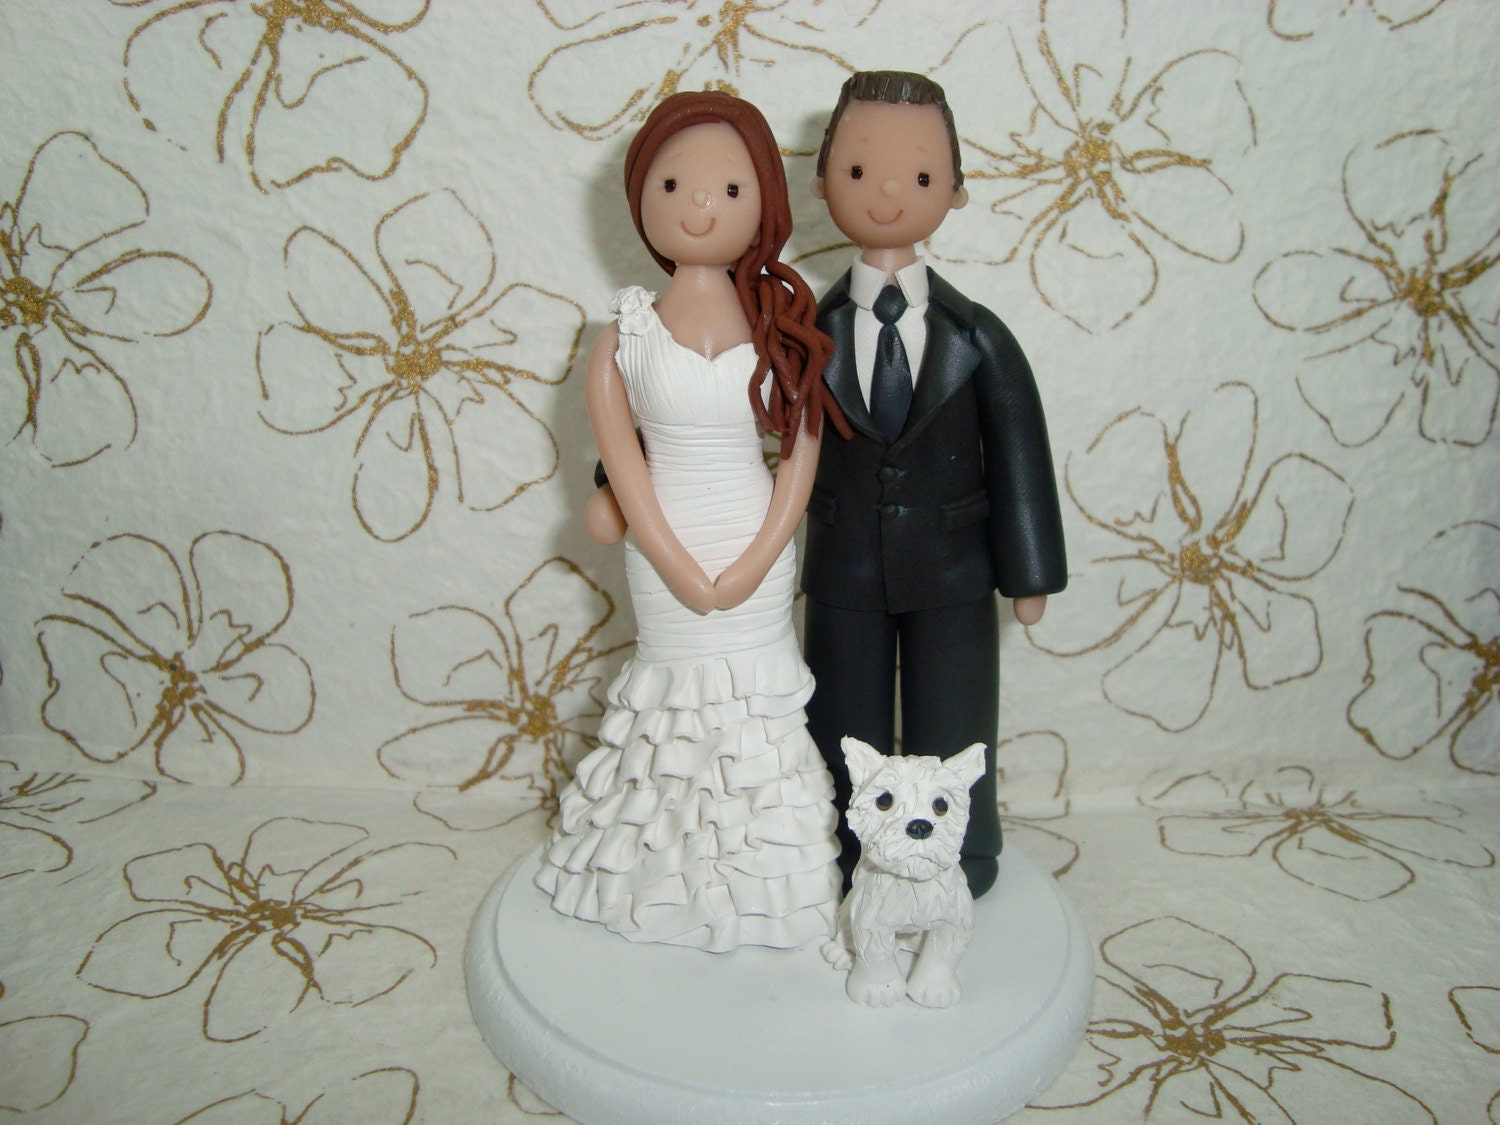 personalized wedding cake toppers bride and groom